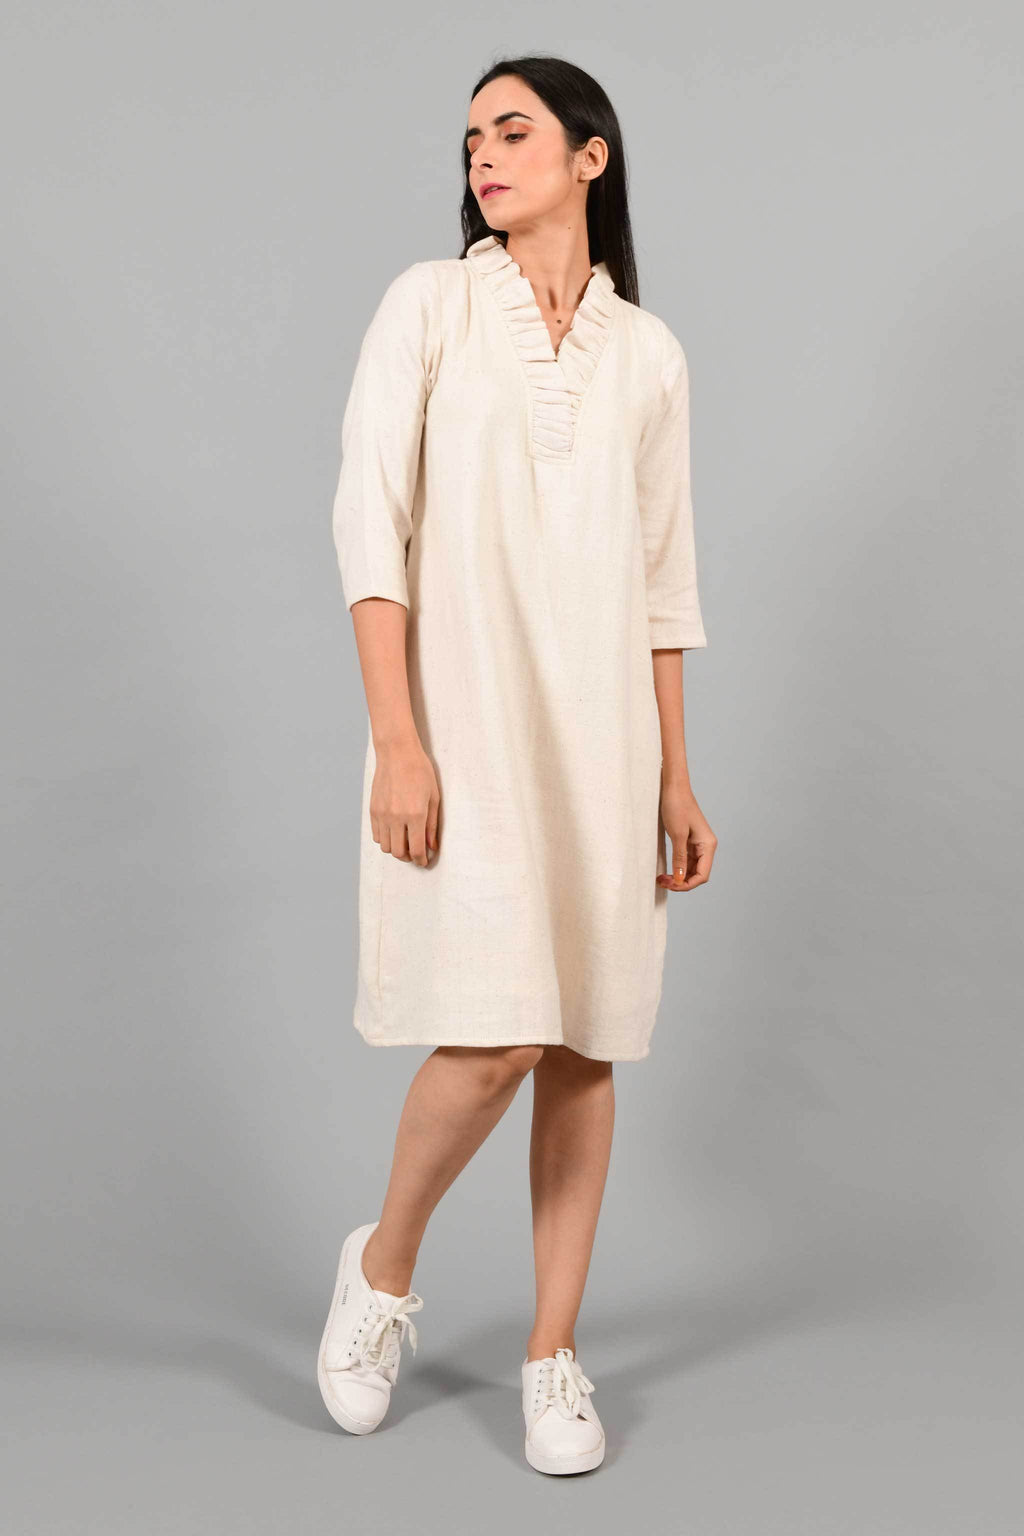 Stylised front pose of an Indian female womenswear fashion model in an off-white Cashmere Cotton Dress with flared neck, made using handspun and handwoven khadi cotton by Cotton Rack.